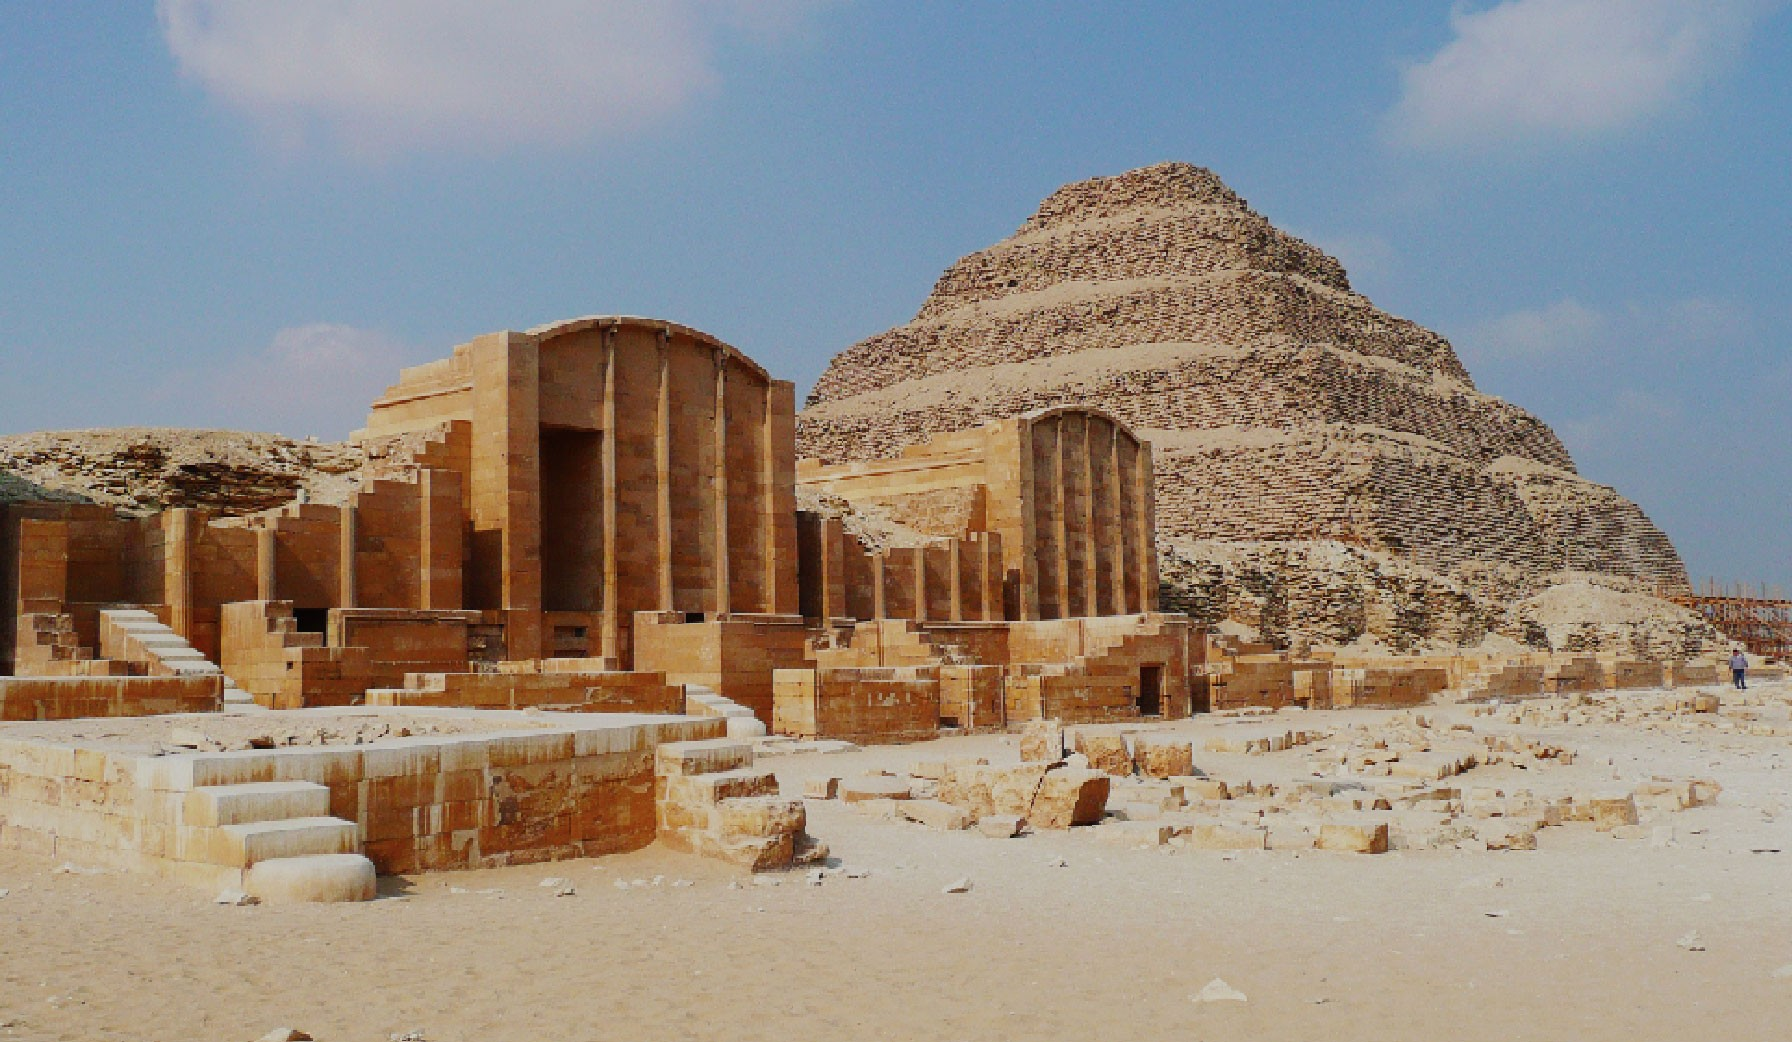 Giza Pyramids Excursions from Alexandria Egypt